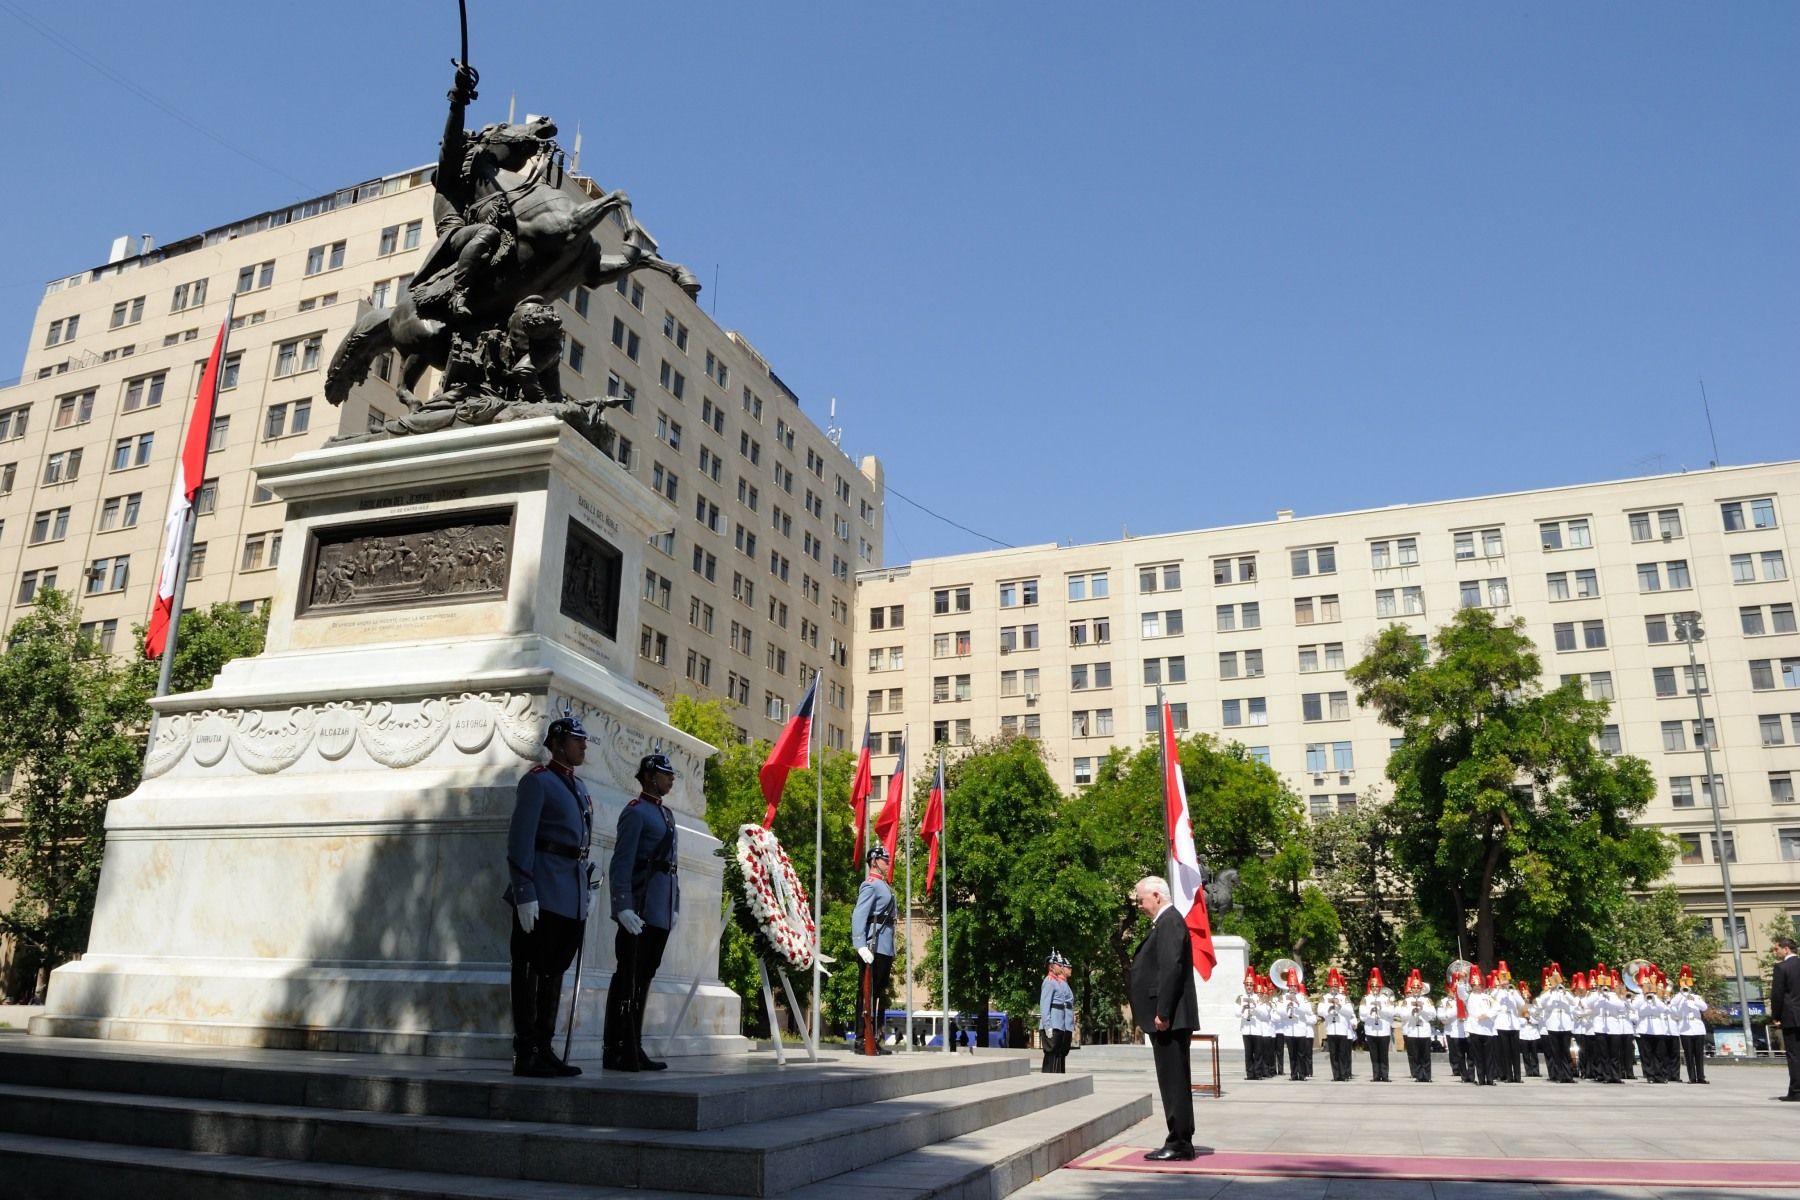 The Chilean War of Independence (1810-1821) was an armed conflict between pro-independence Chileans seeking political and economic autonomy from Spain, and royalists supporting continued allegiance to the Captaincy General of Chile and membership in the Spanish Empire. The Monument to Bernardo O'Higgins is located at the Plaza de la Ciudadanía.